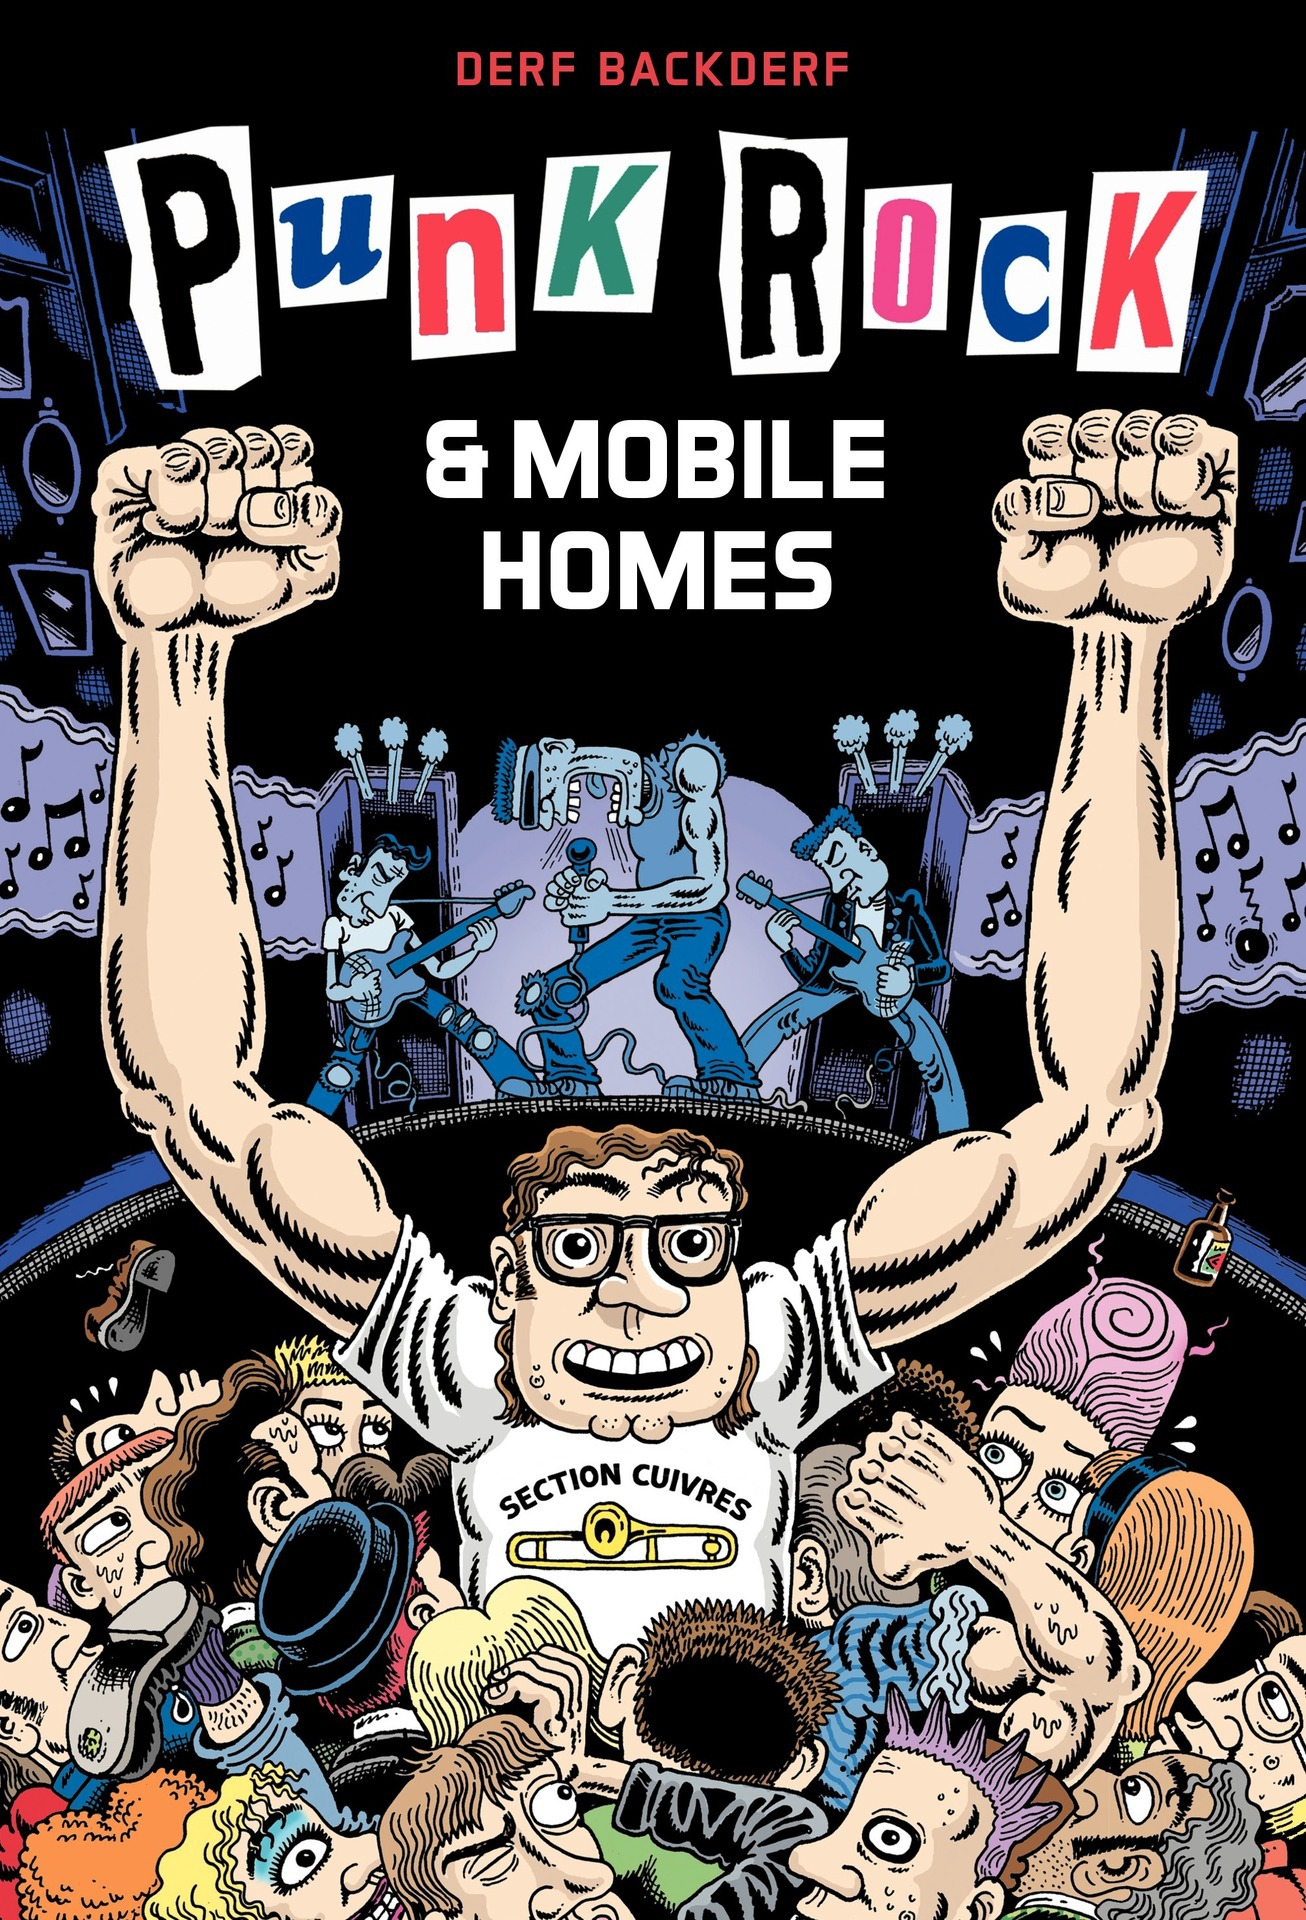 Punk rock et mobile homes - Derf Backderf